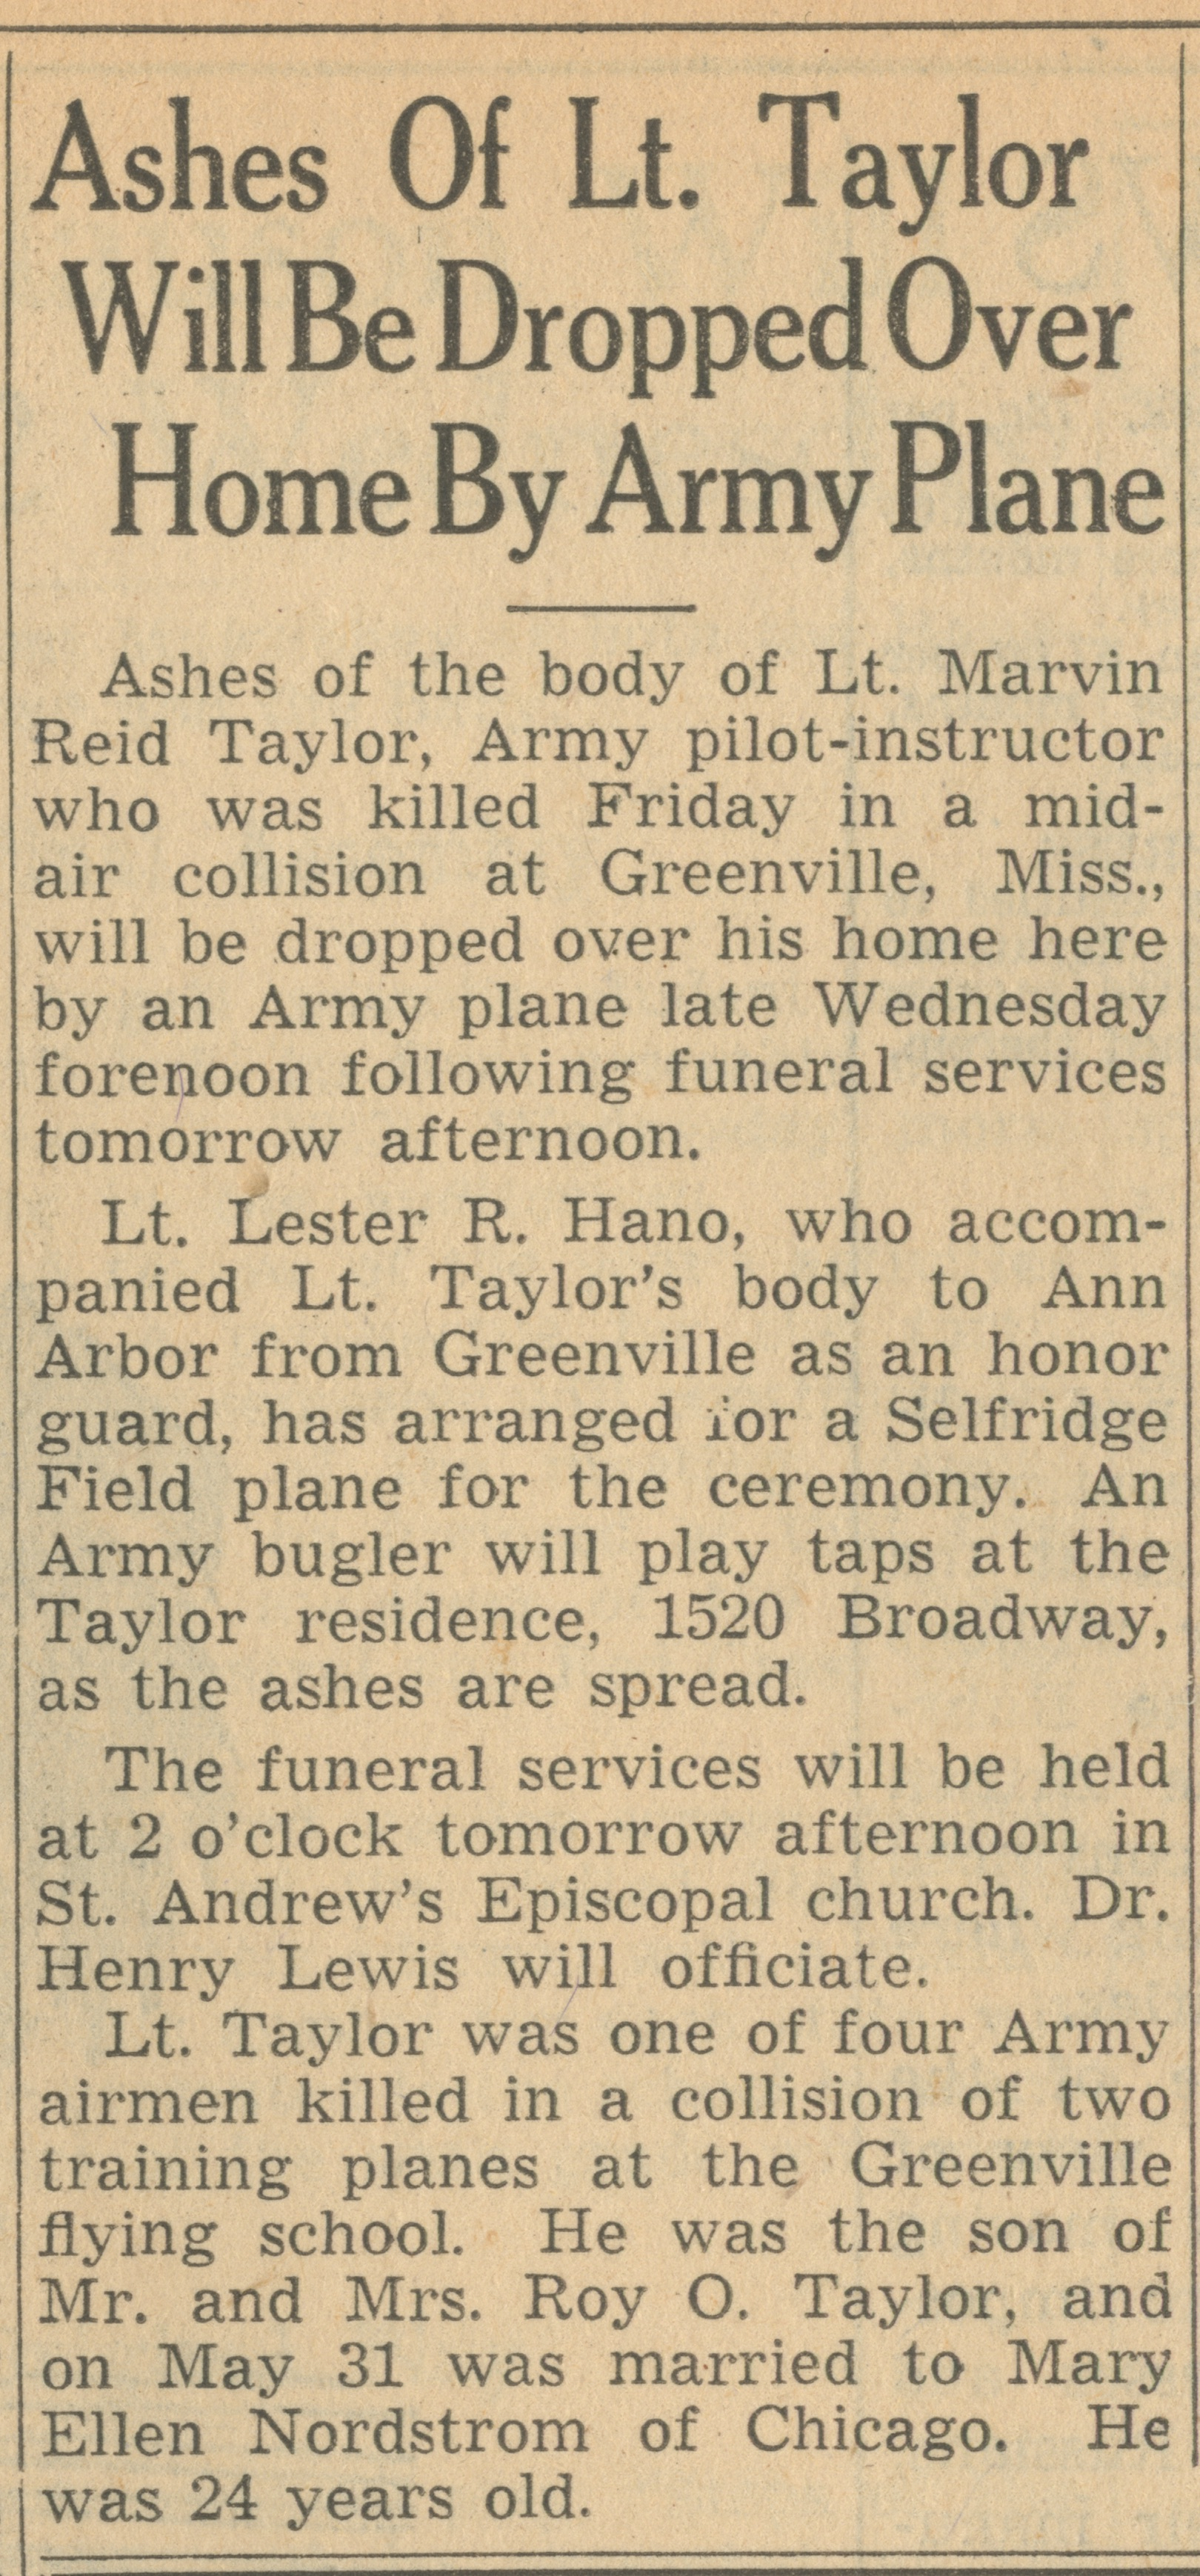 Ashes Of Lt. Taylor Will Be Dropped Over Home By Army Plane image